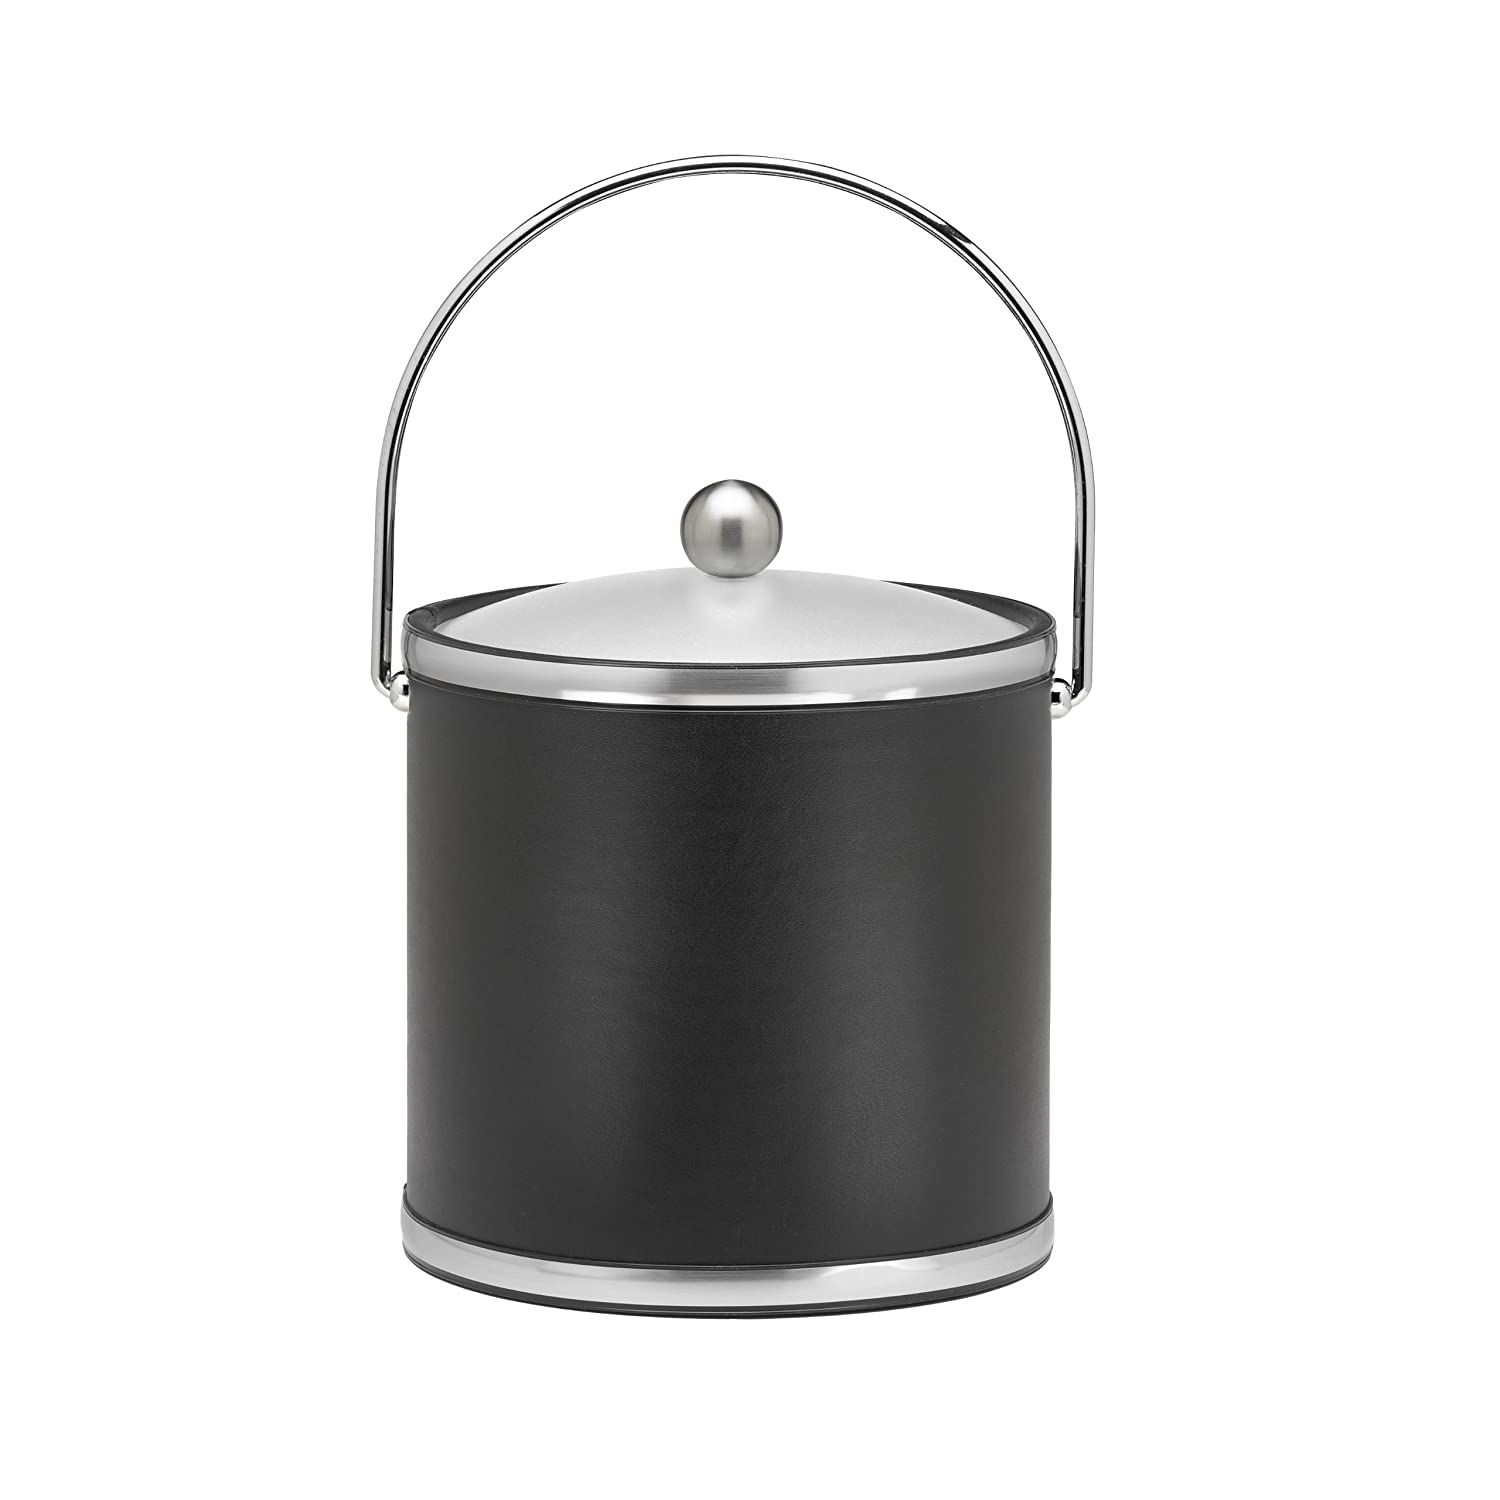 Amazon.com: Kraftware Brushed Chrome Ice Bucket With Bale Handle And Metal  Cover, Black   3 Quart: Ice Buckets Insulated With Lids: Kitchen U0026 Dining